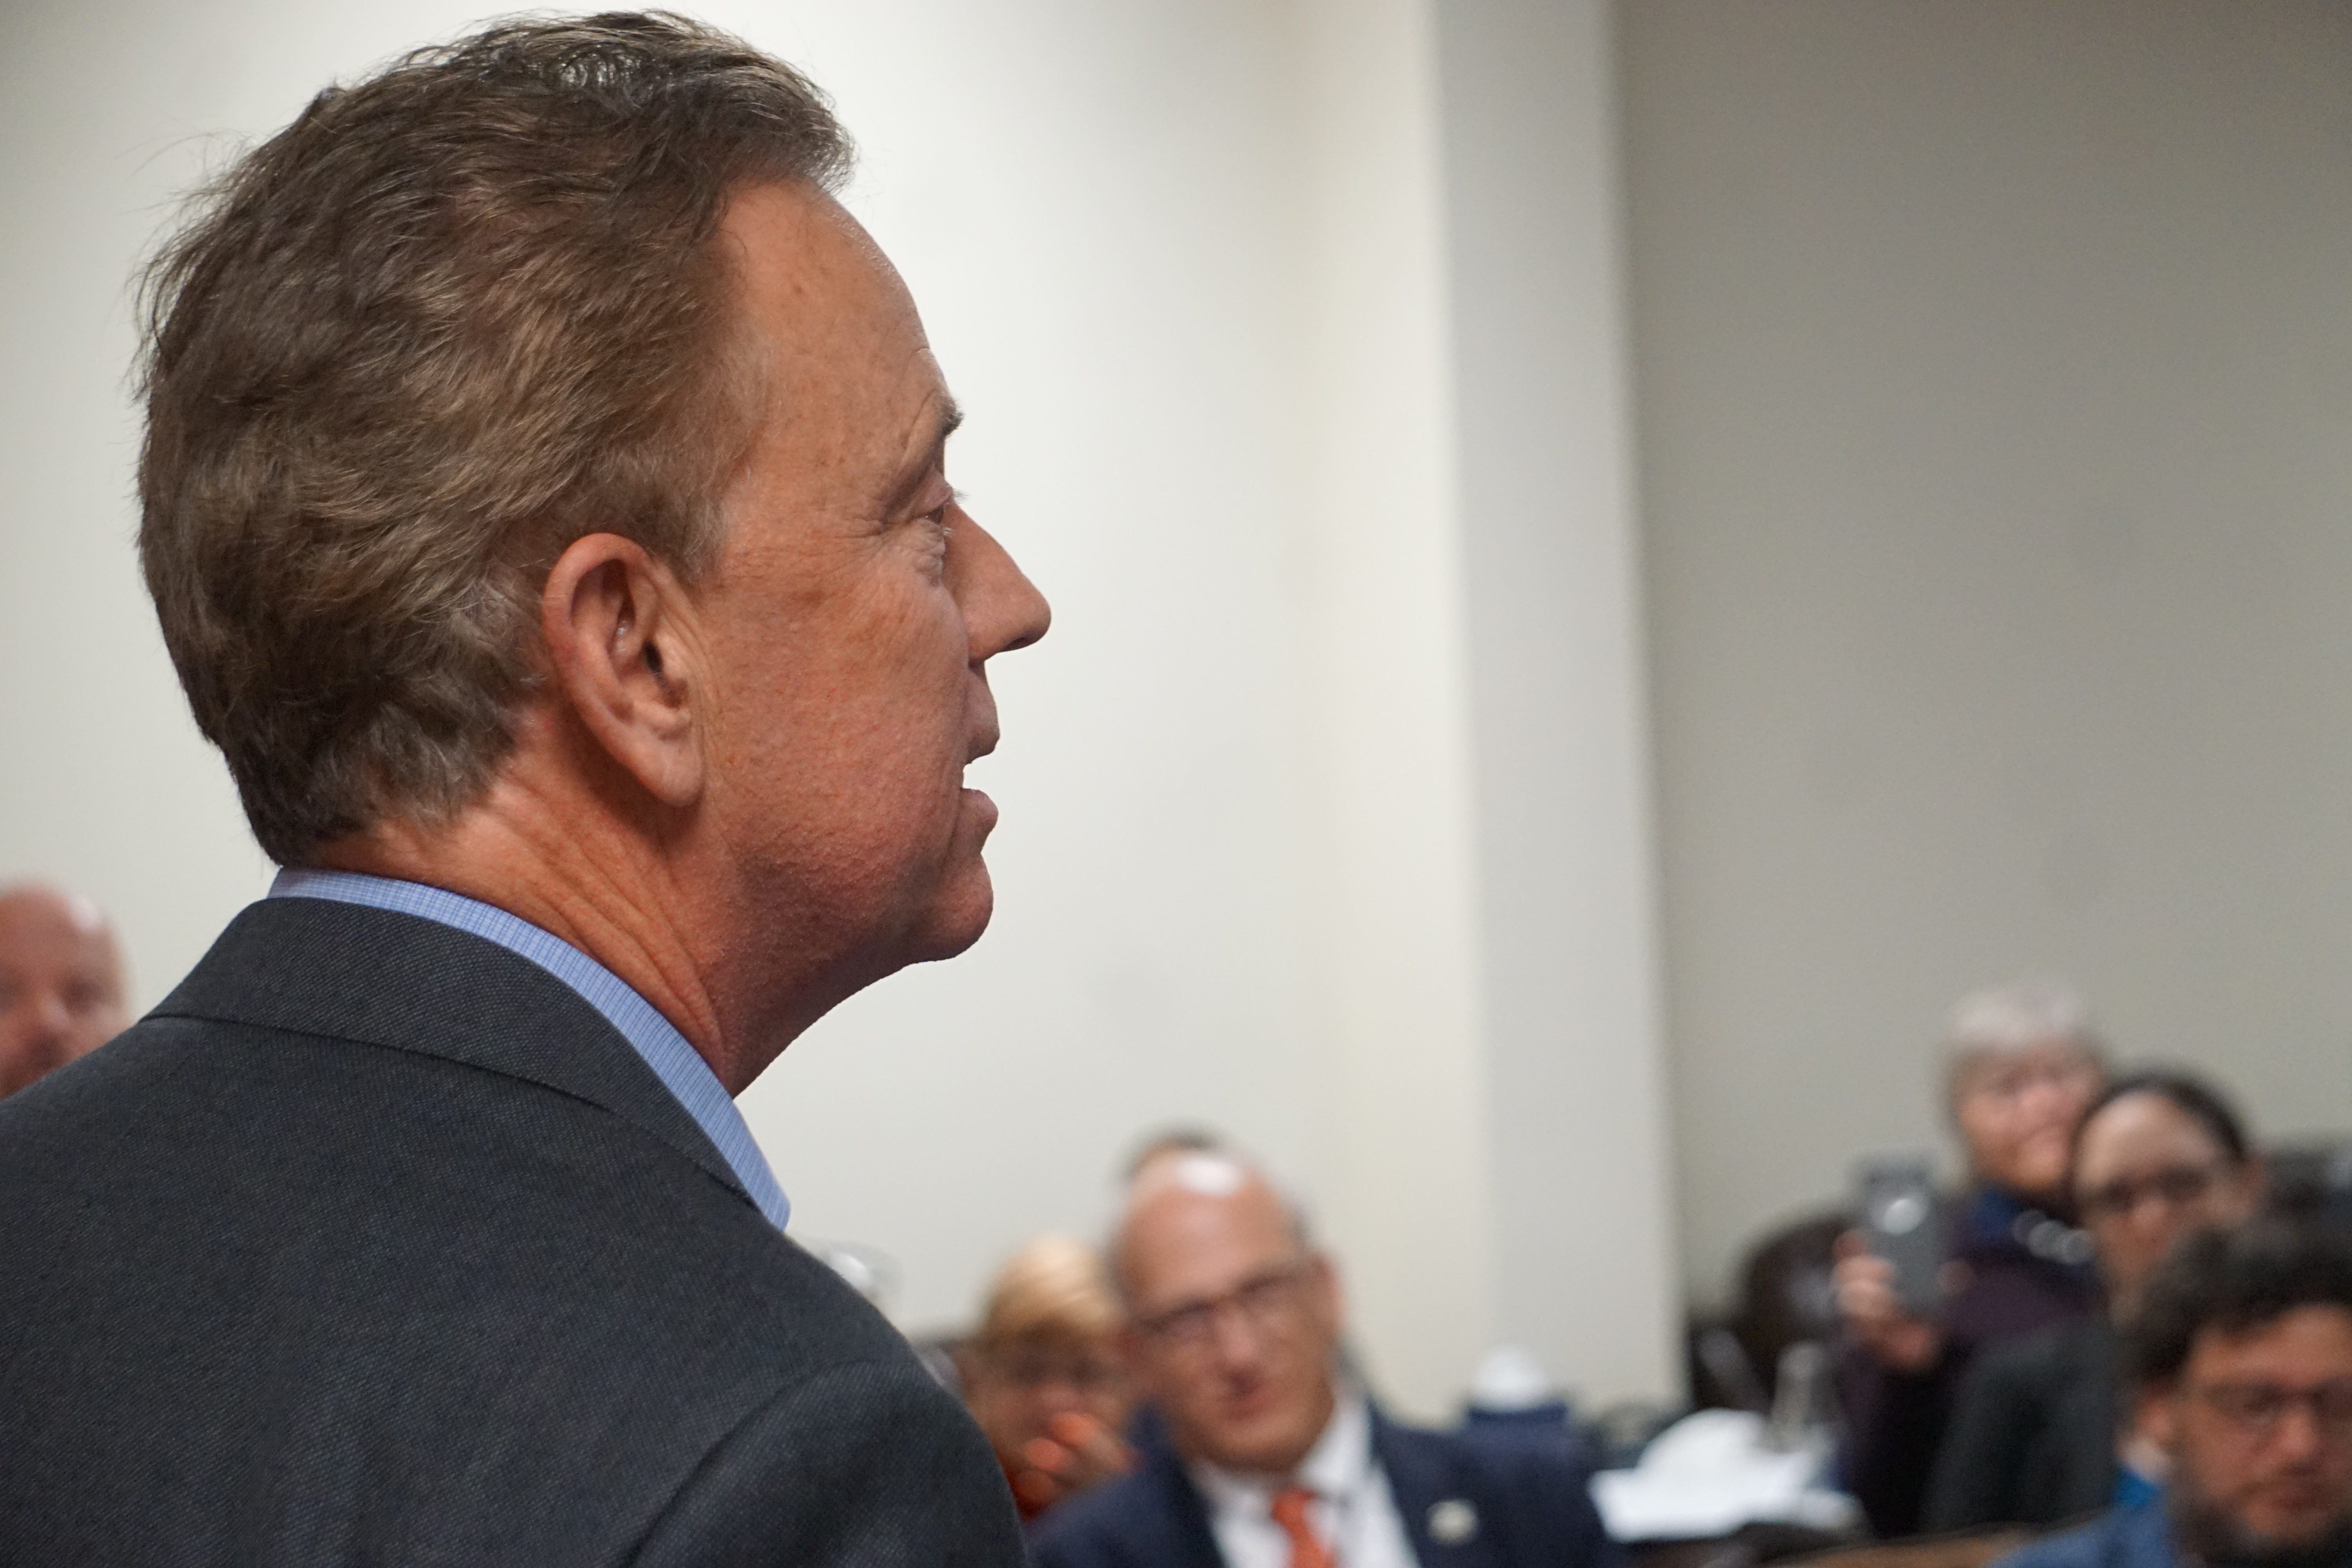 Lamont talks tolls to Dems: 'I know I put you in a tough vote'